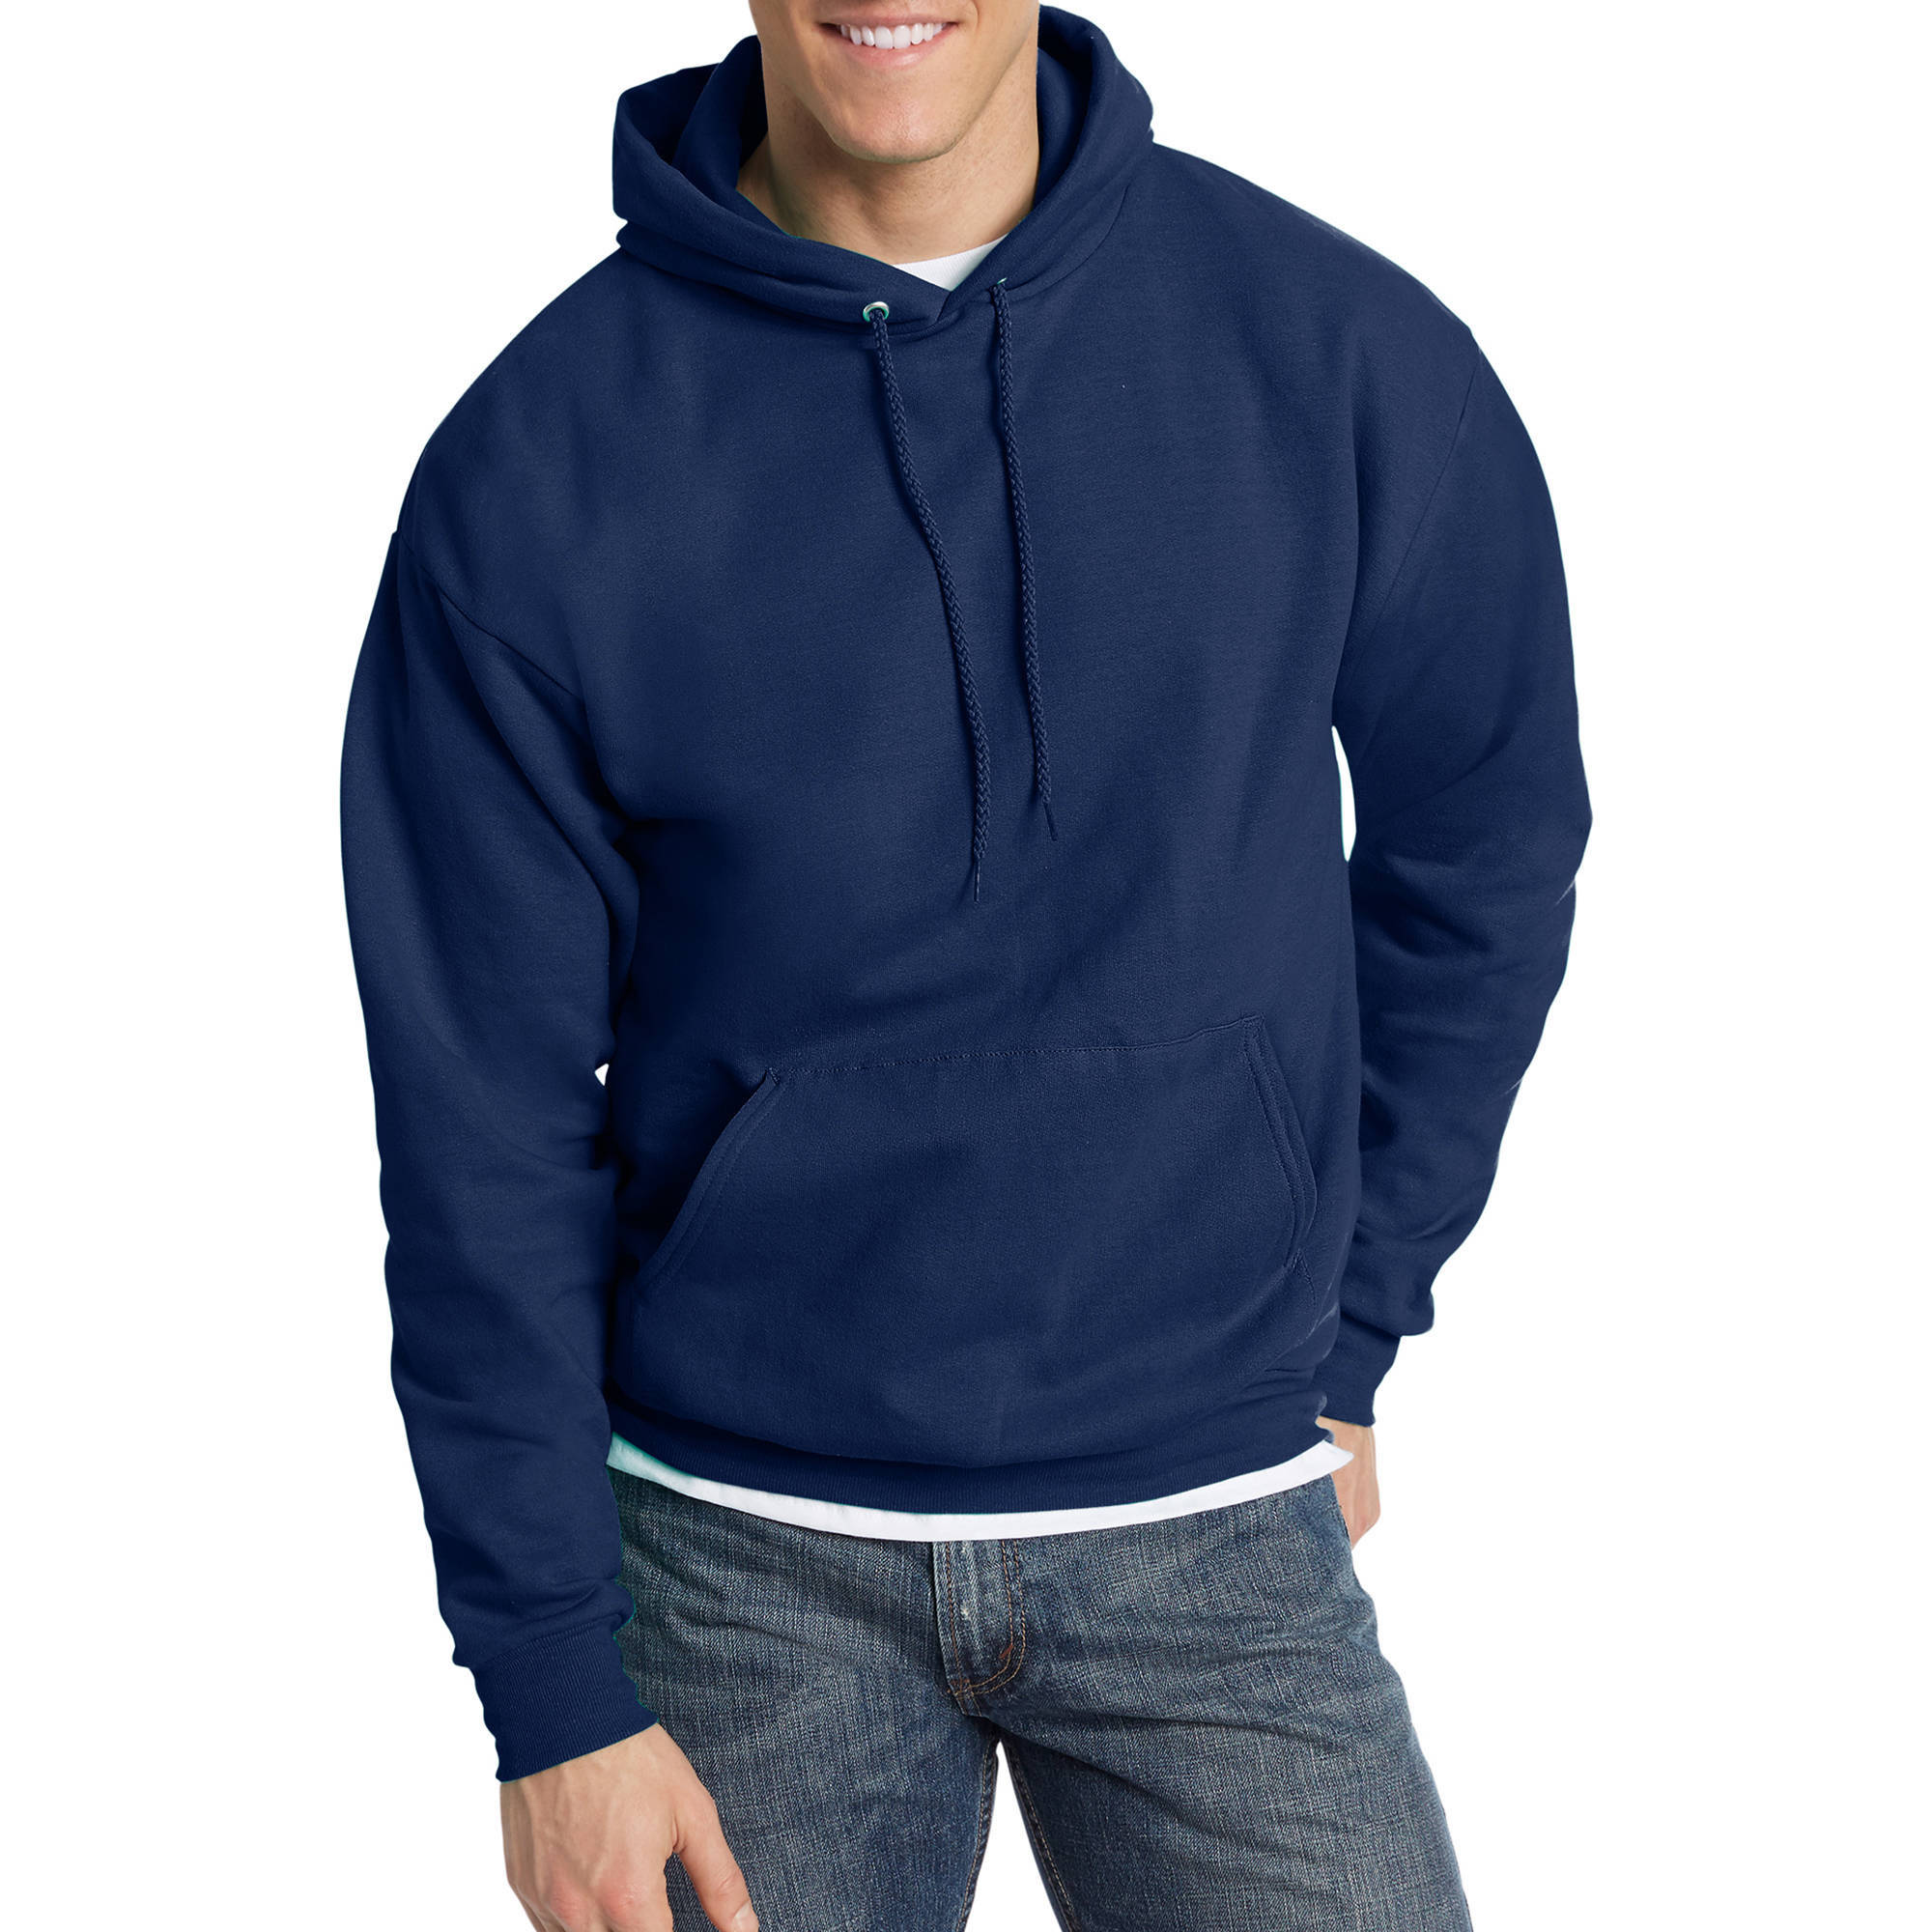 Hanes Men's EcoSmart Fleece Pullover Hood